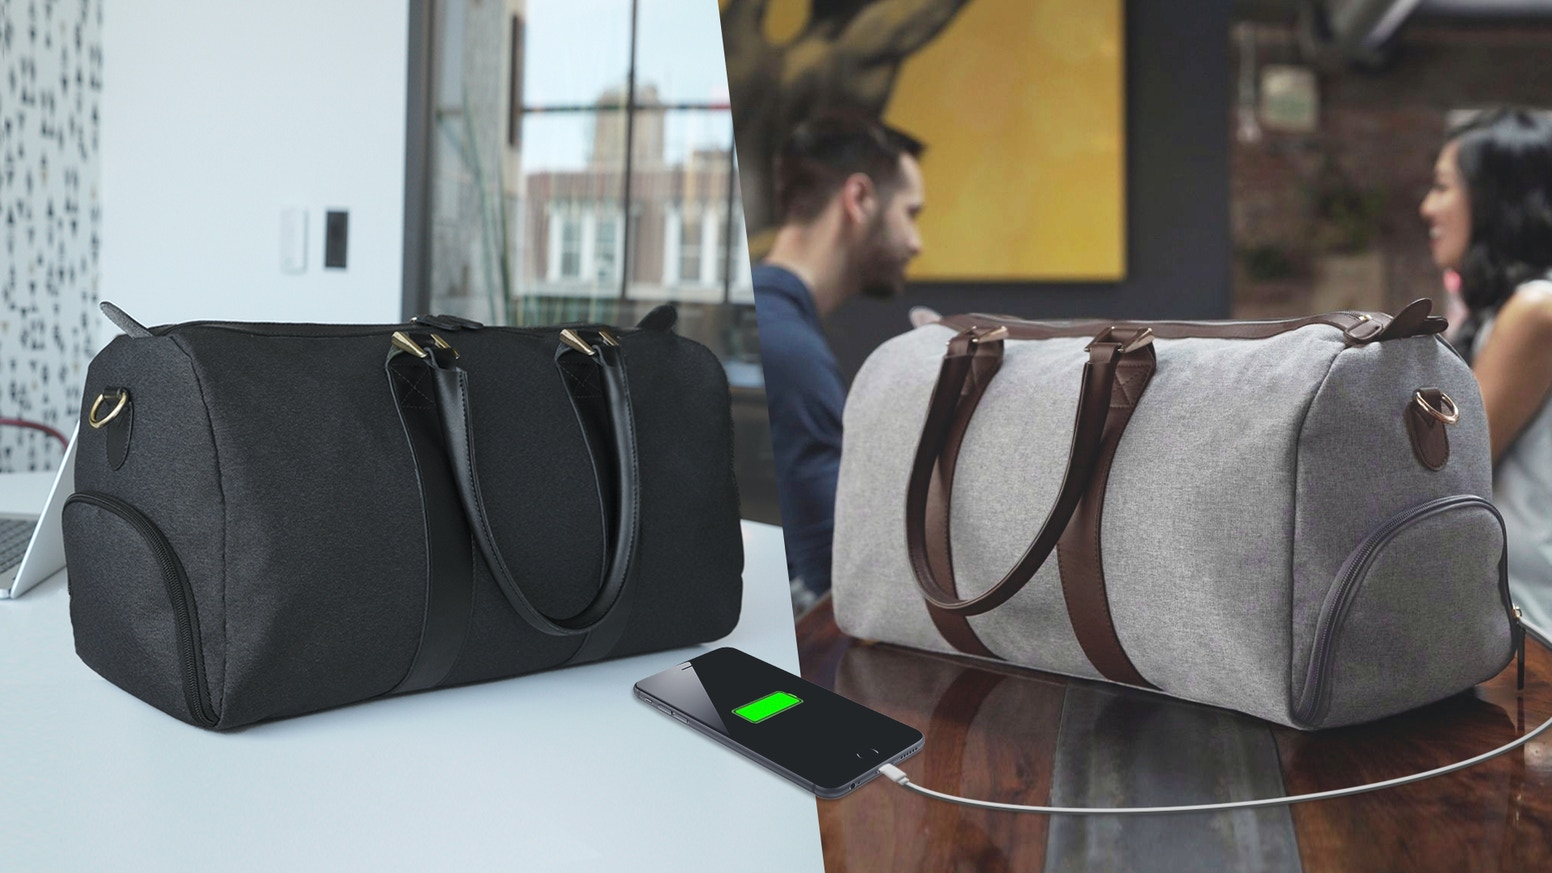 Stylish duffle bags with an internal battery to keep your phone charged. Perfect for travel, work, and the gym.